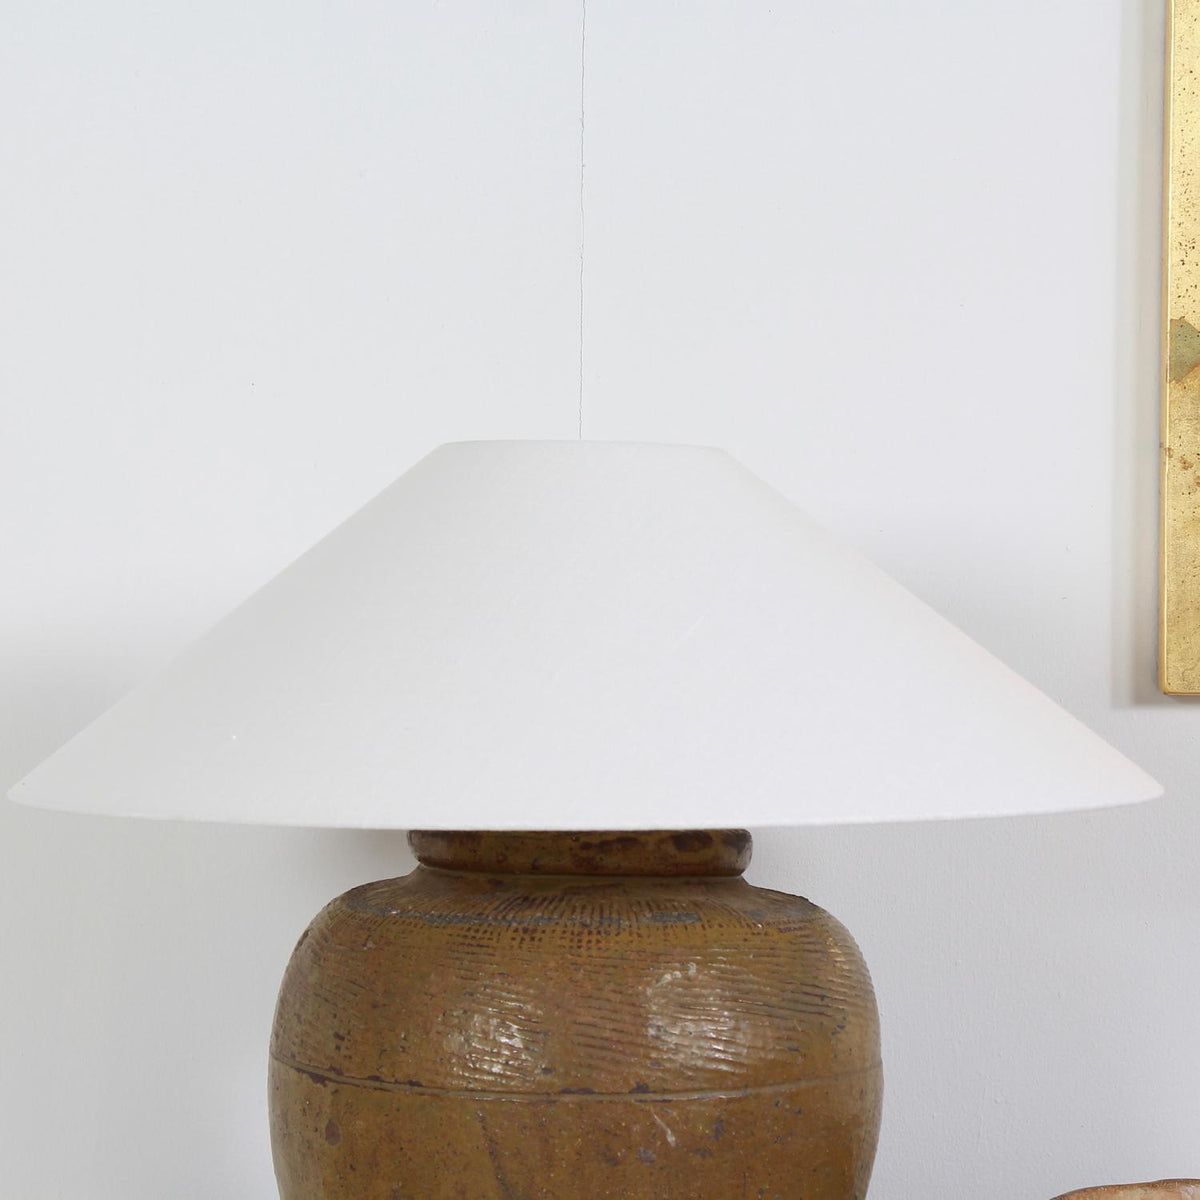 Authentic  Chinese Ceramic Water Pot Converted into Lamp with Shade